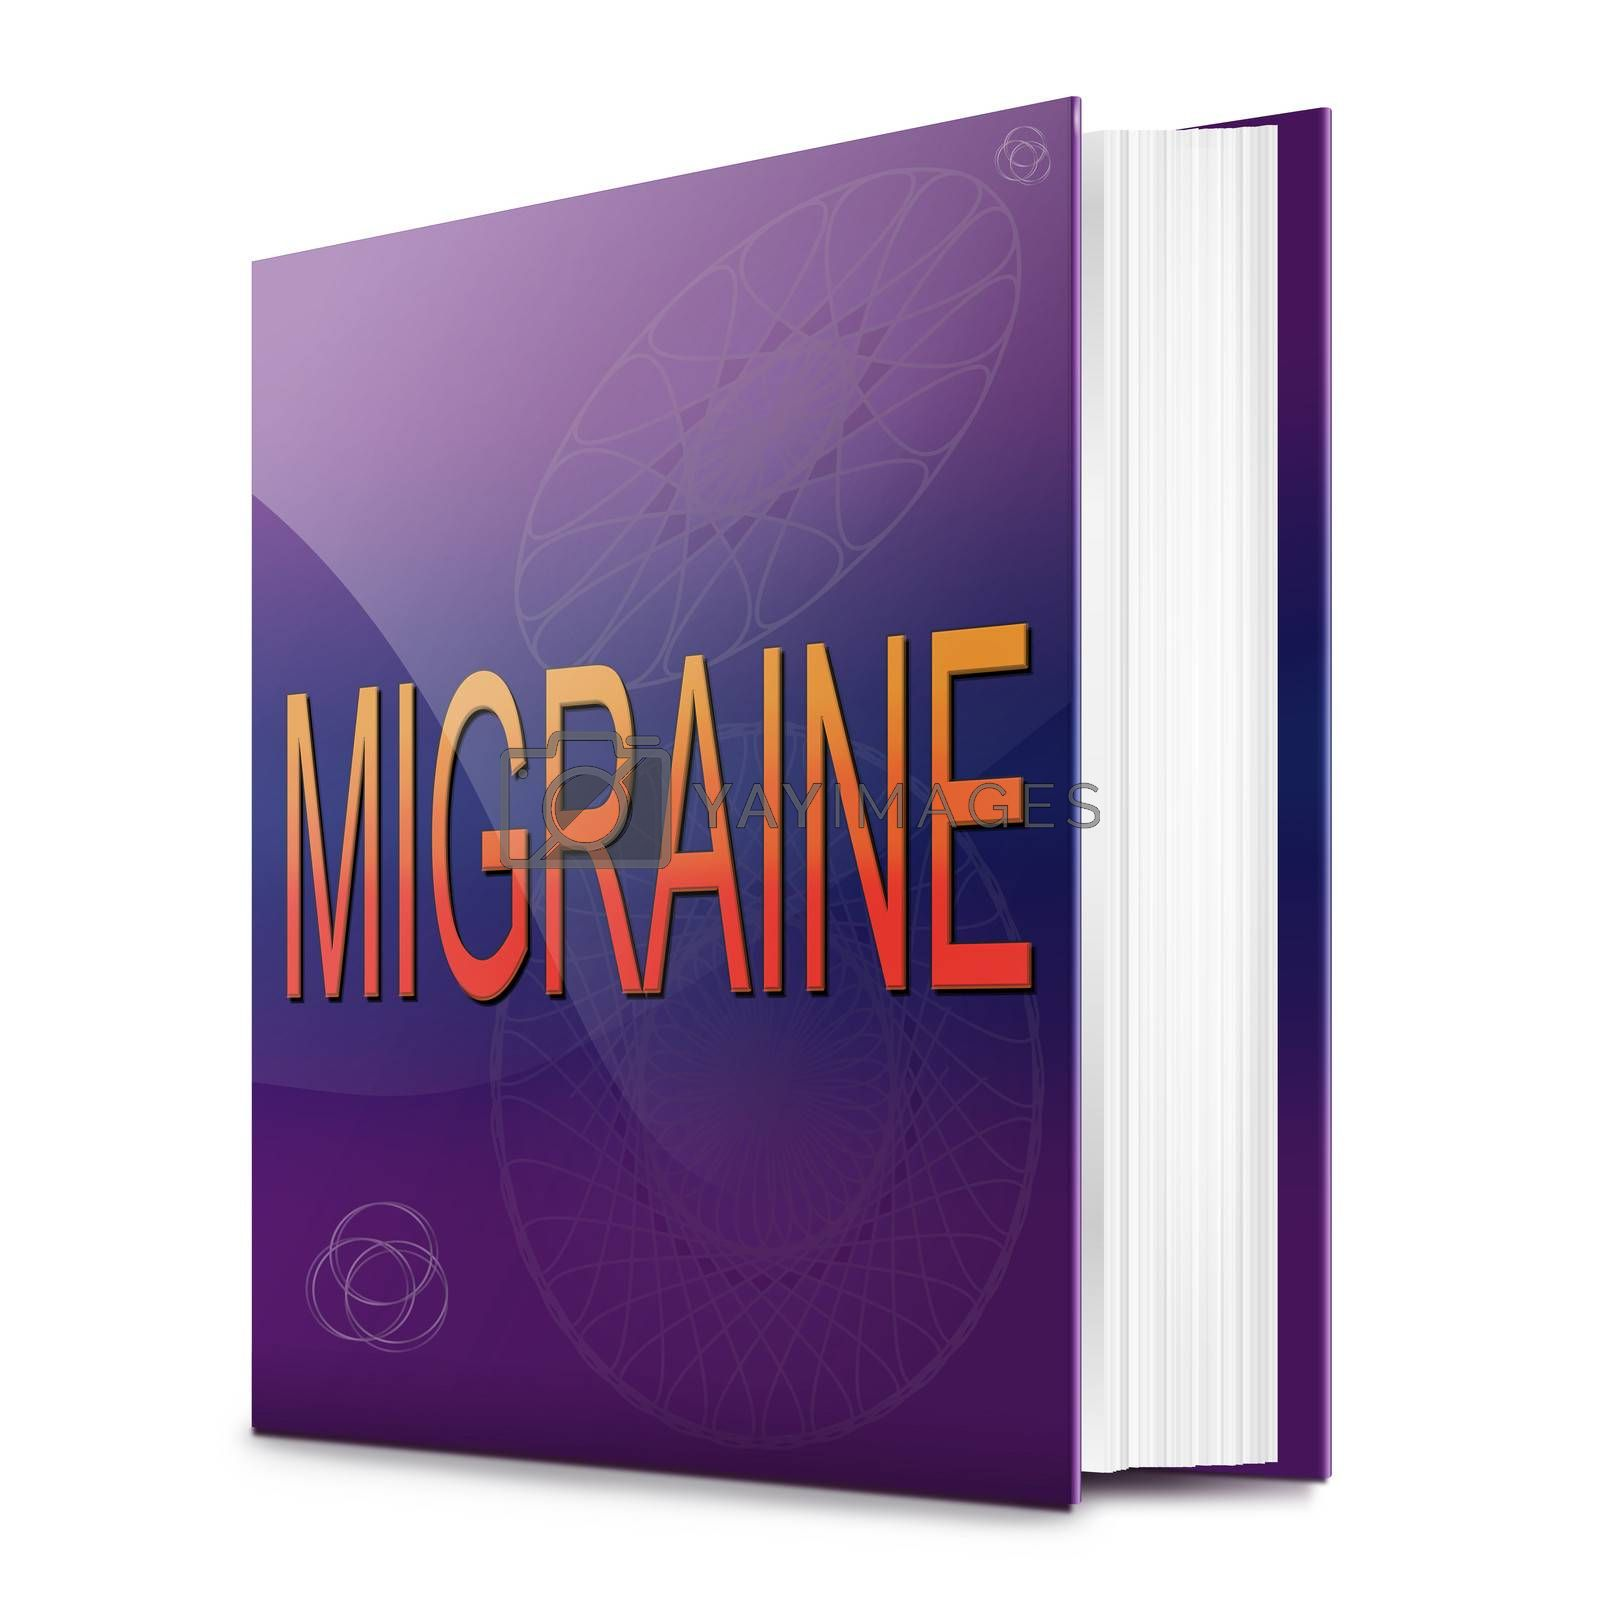 Illustration depicting a text book with a migraine concept title. White background.